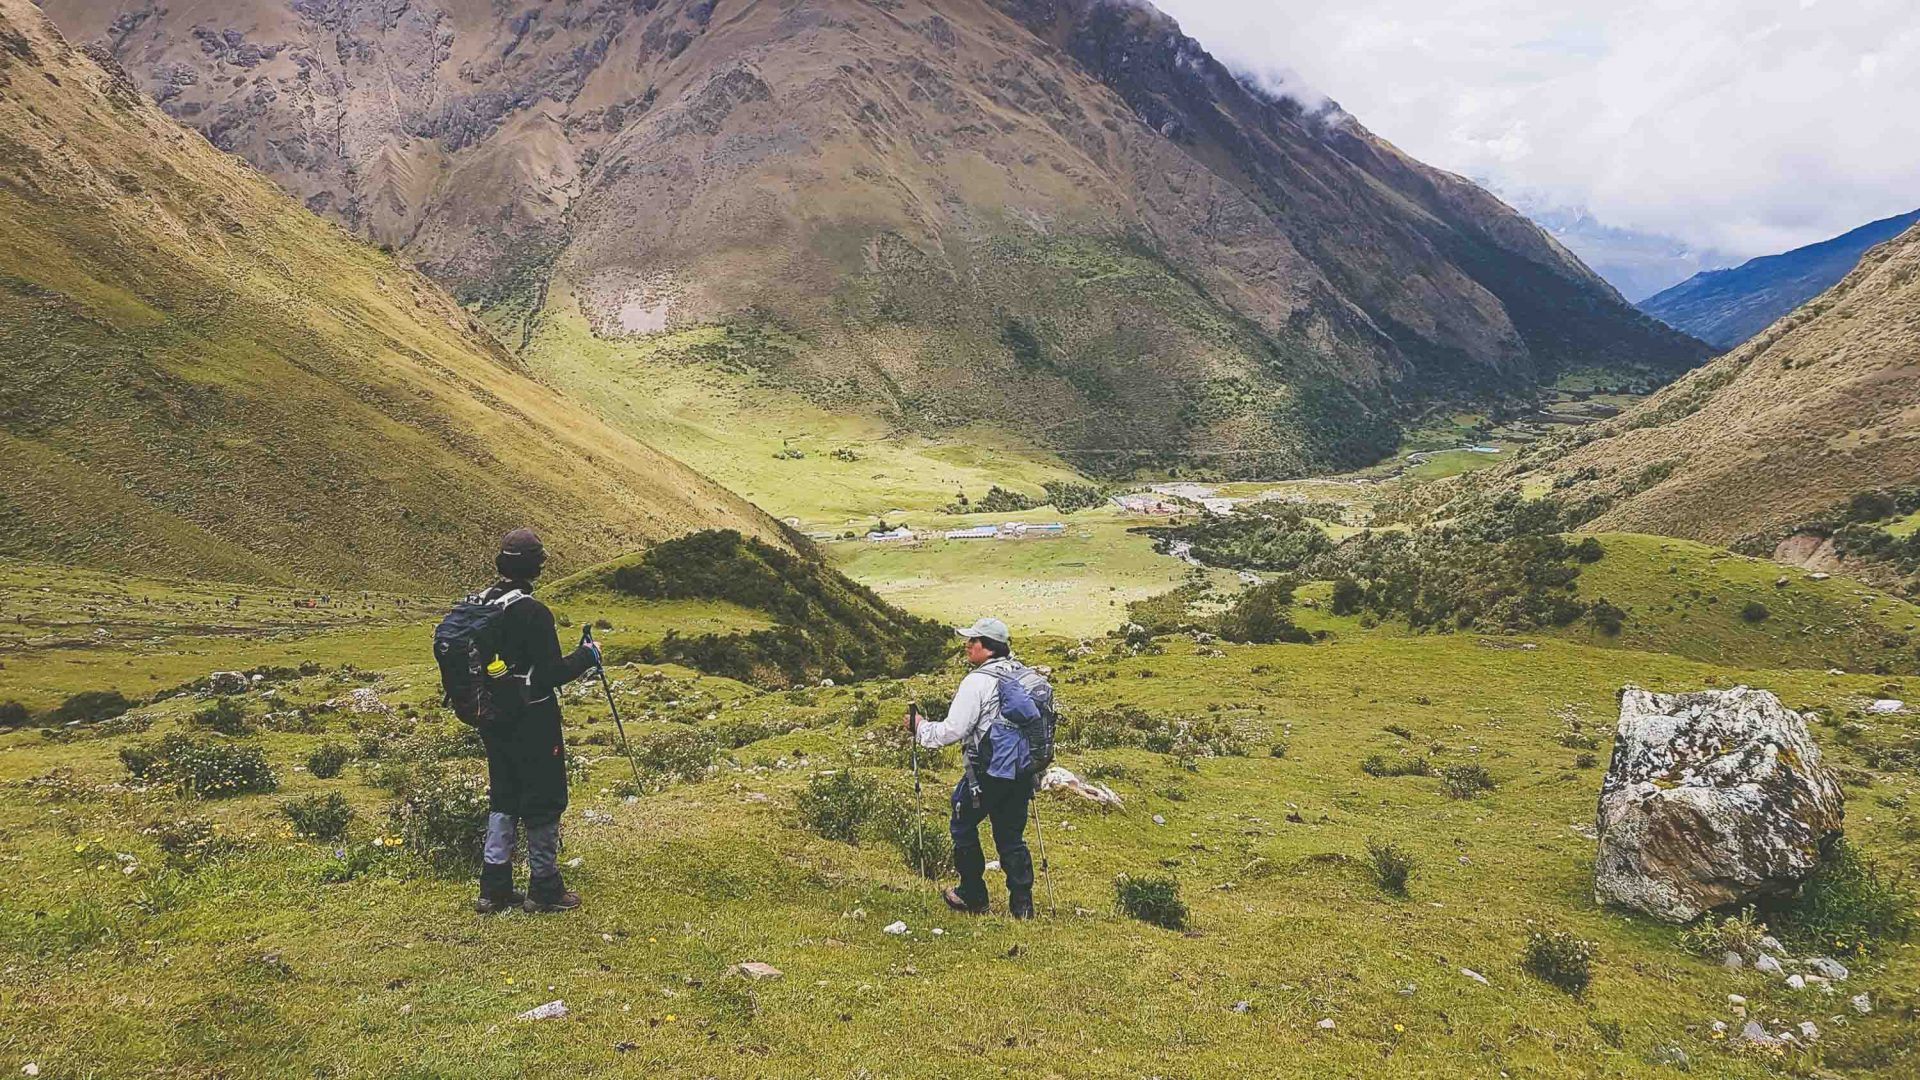 Hikers on the Salkantay trail in Peru.